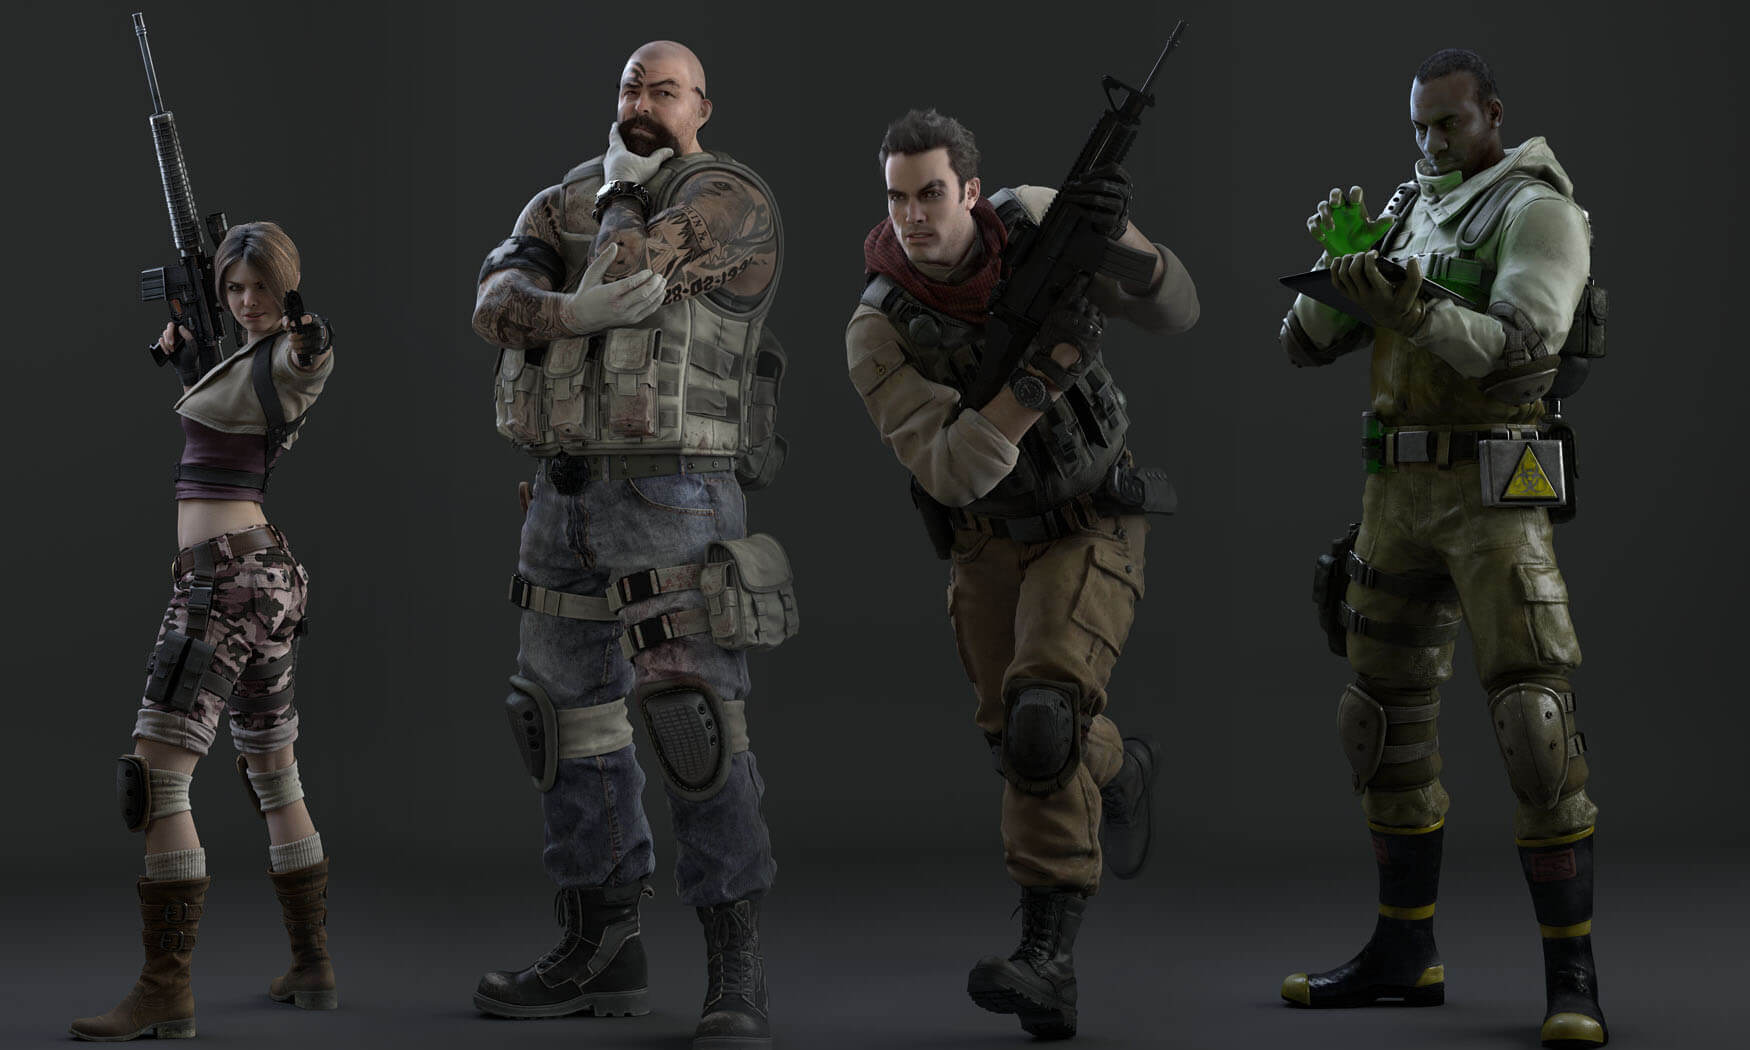 'Resident Evil: Operation Raccoon City' Multiplayer Modes Revealed